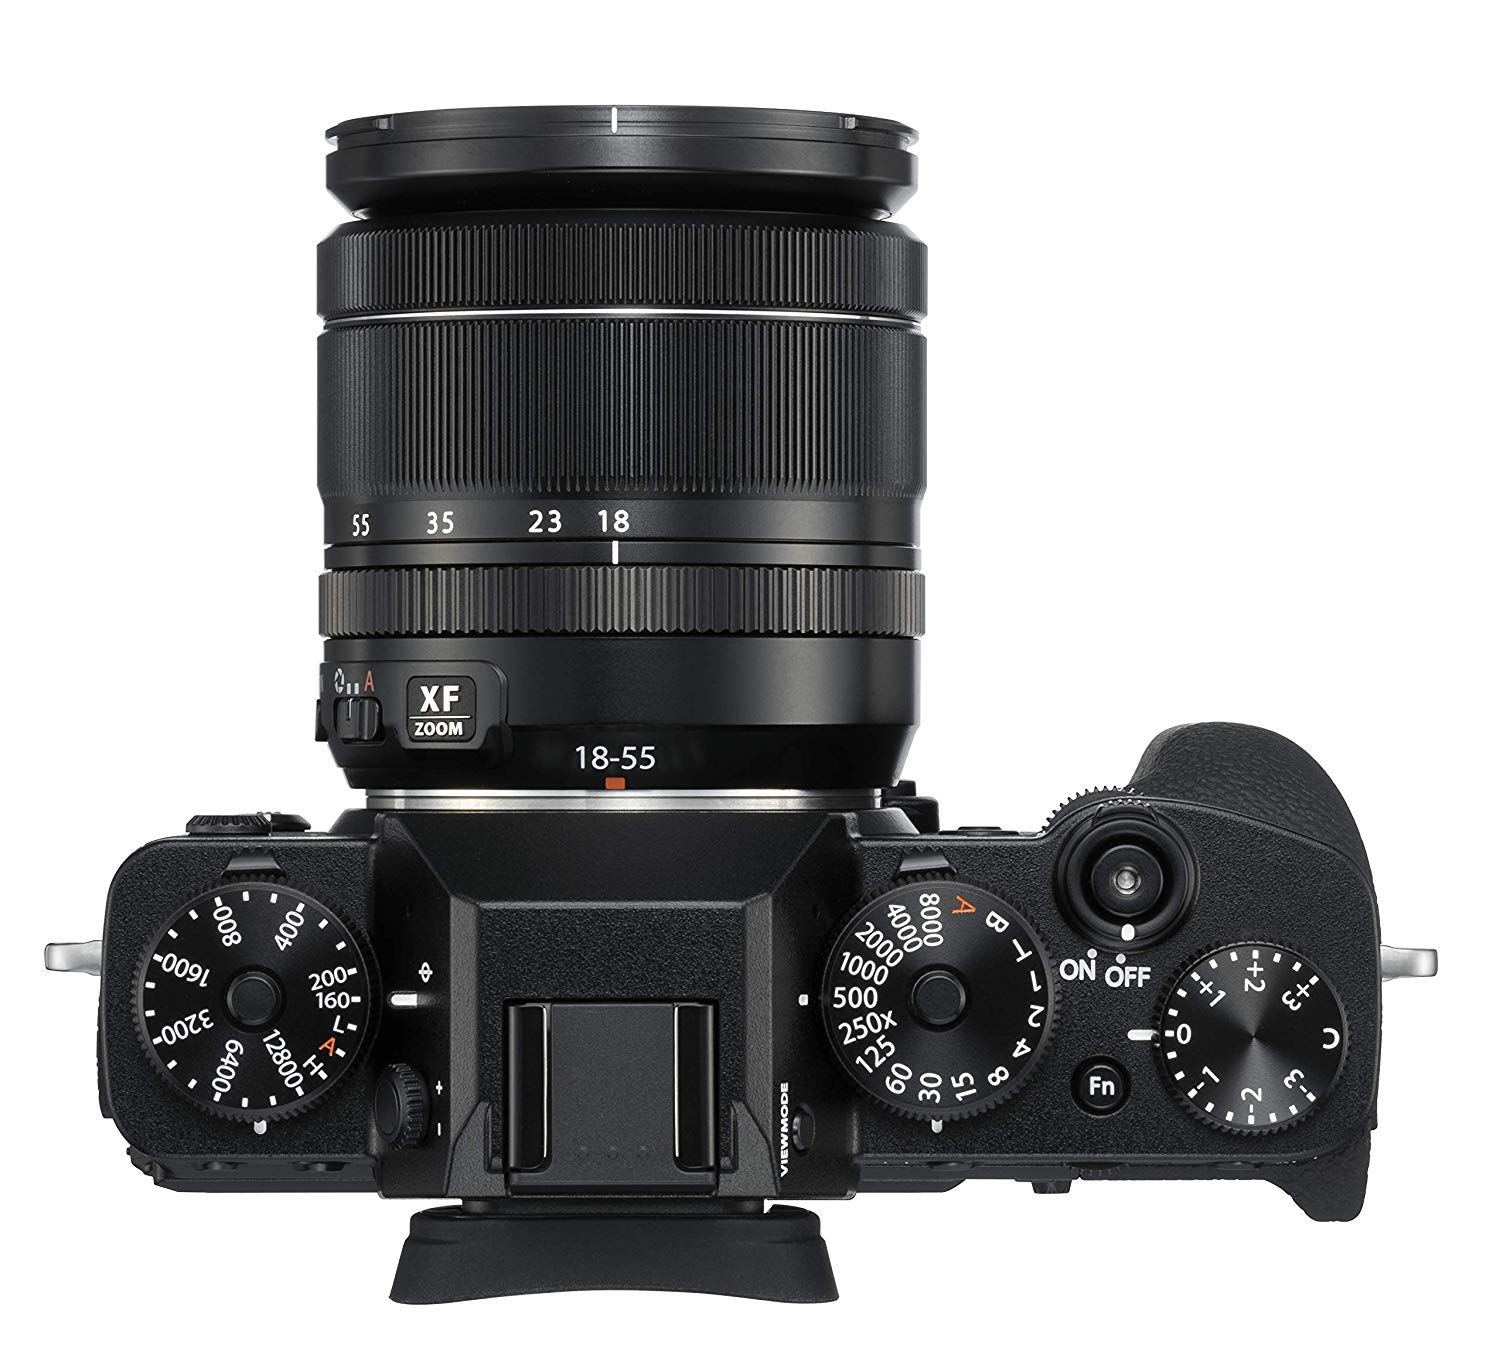 Fujifilm X-T3 Mirrorless Digital Camera2.jpg